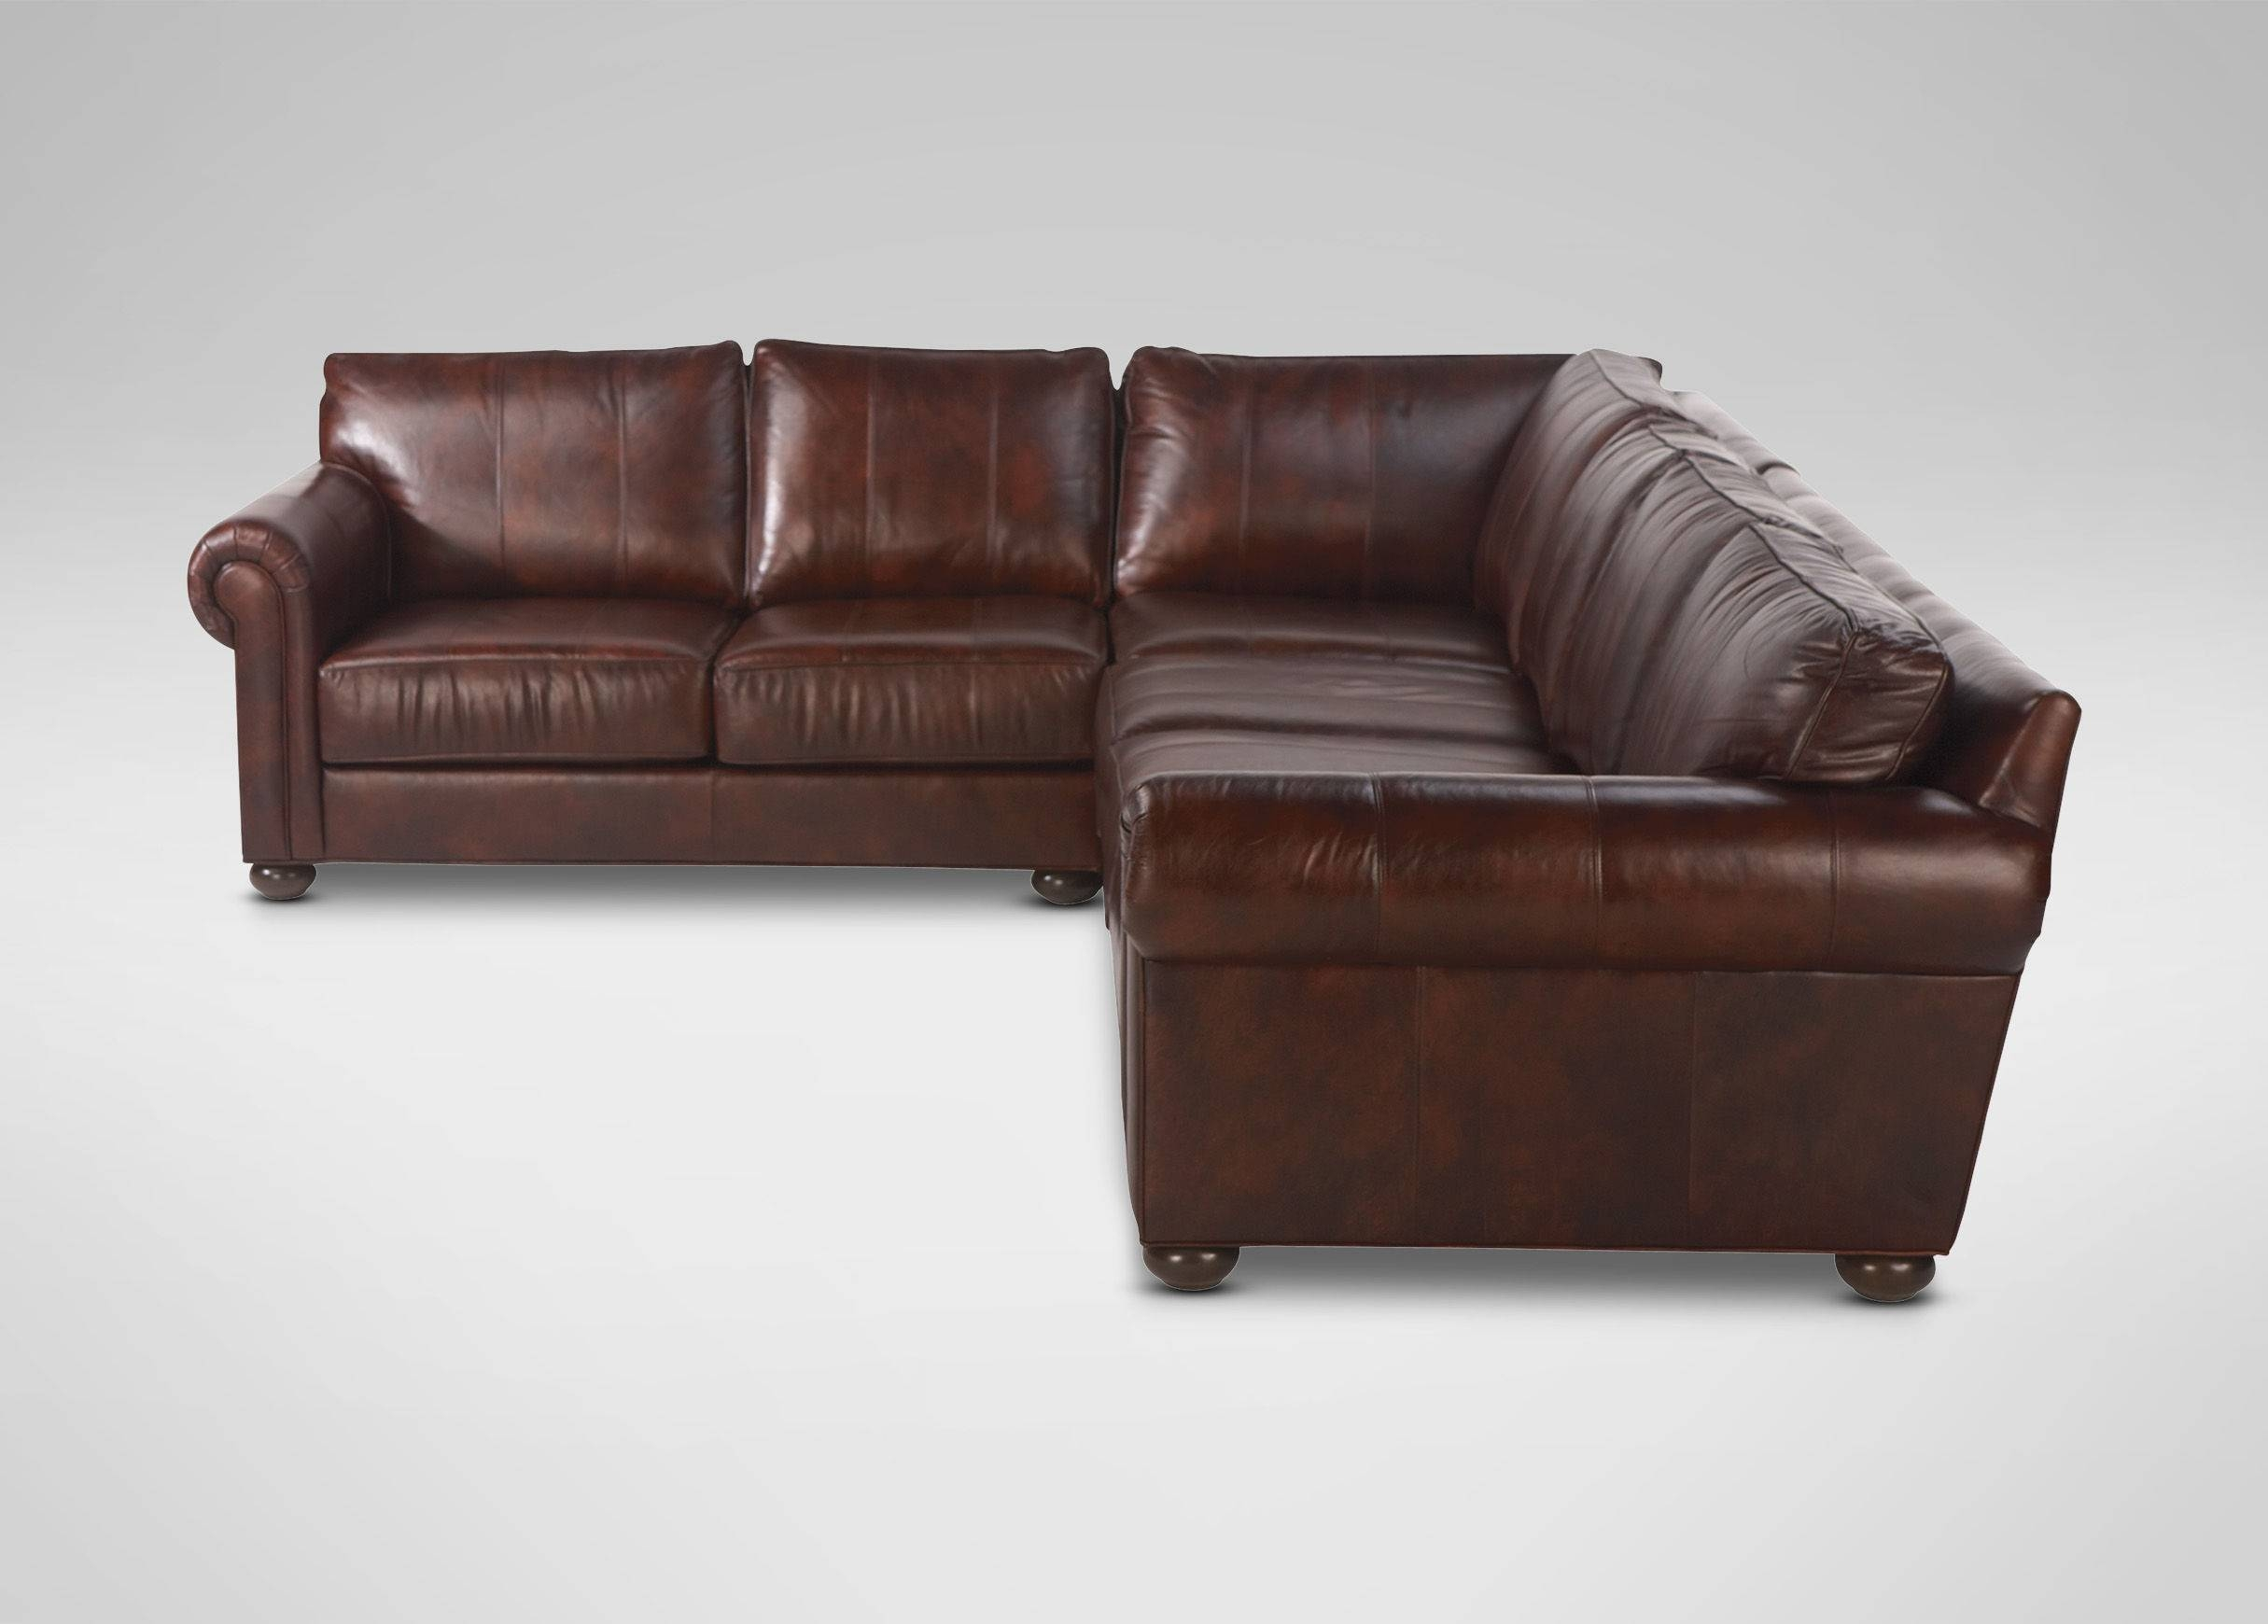 Decorating: Interesting Design Deep Sectional Sofa With Marvelous within Wide Seat Sectional Sofas (Image 11 of 25)